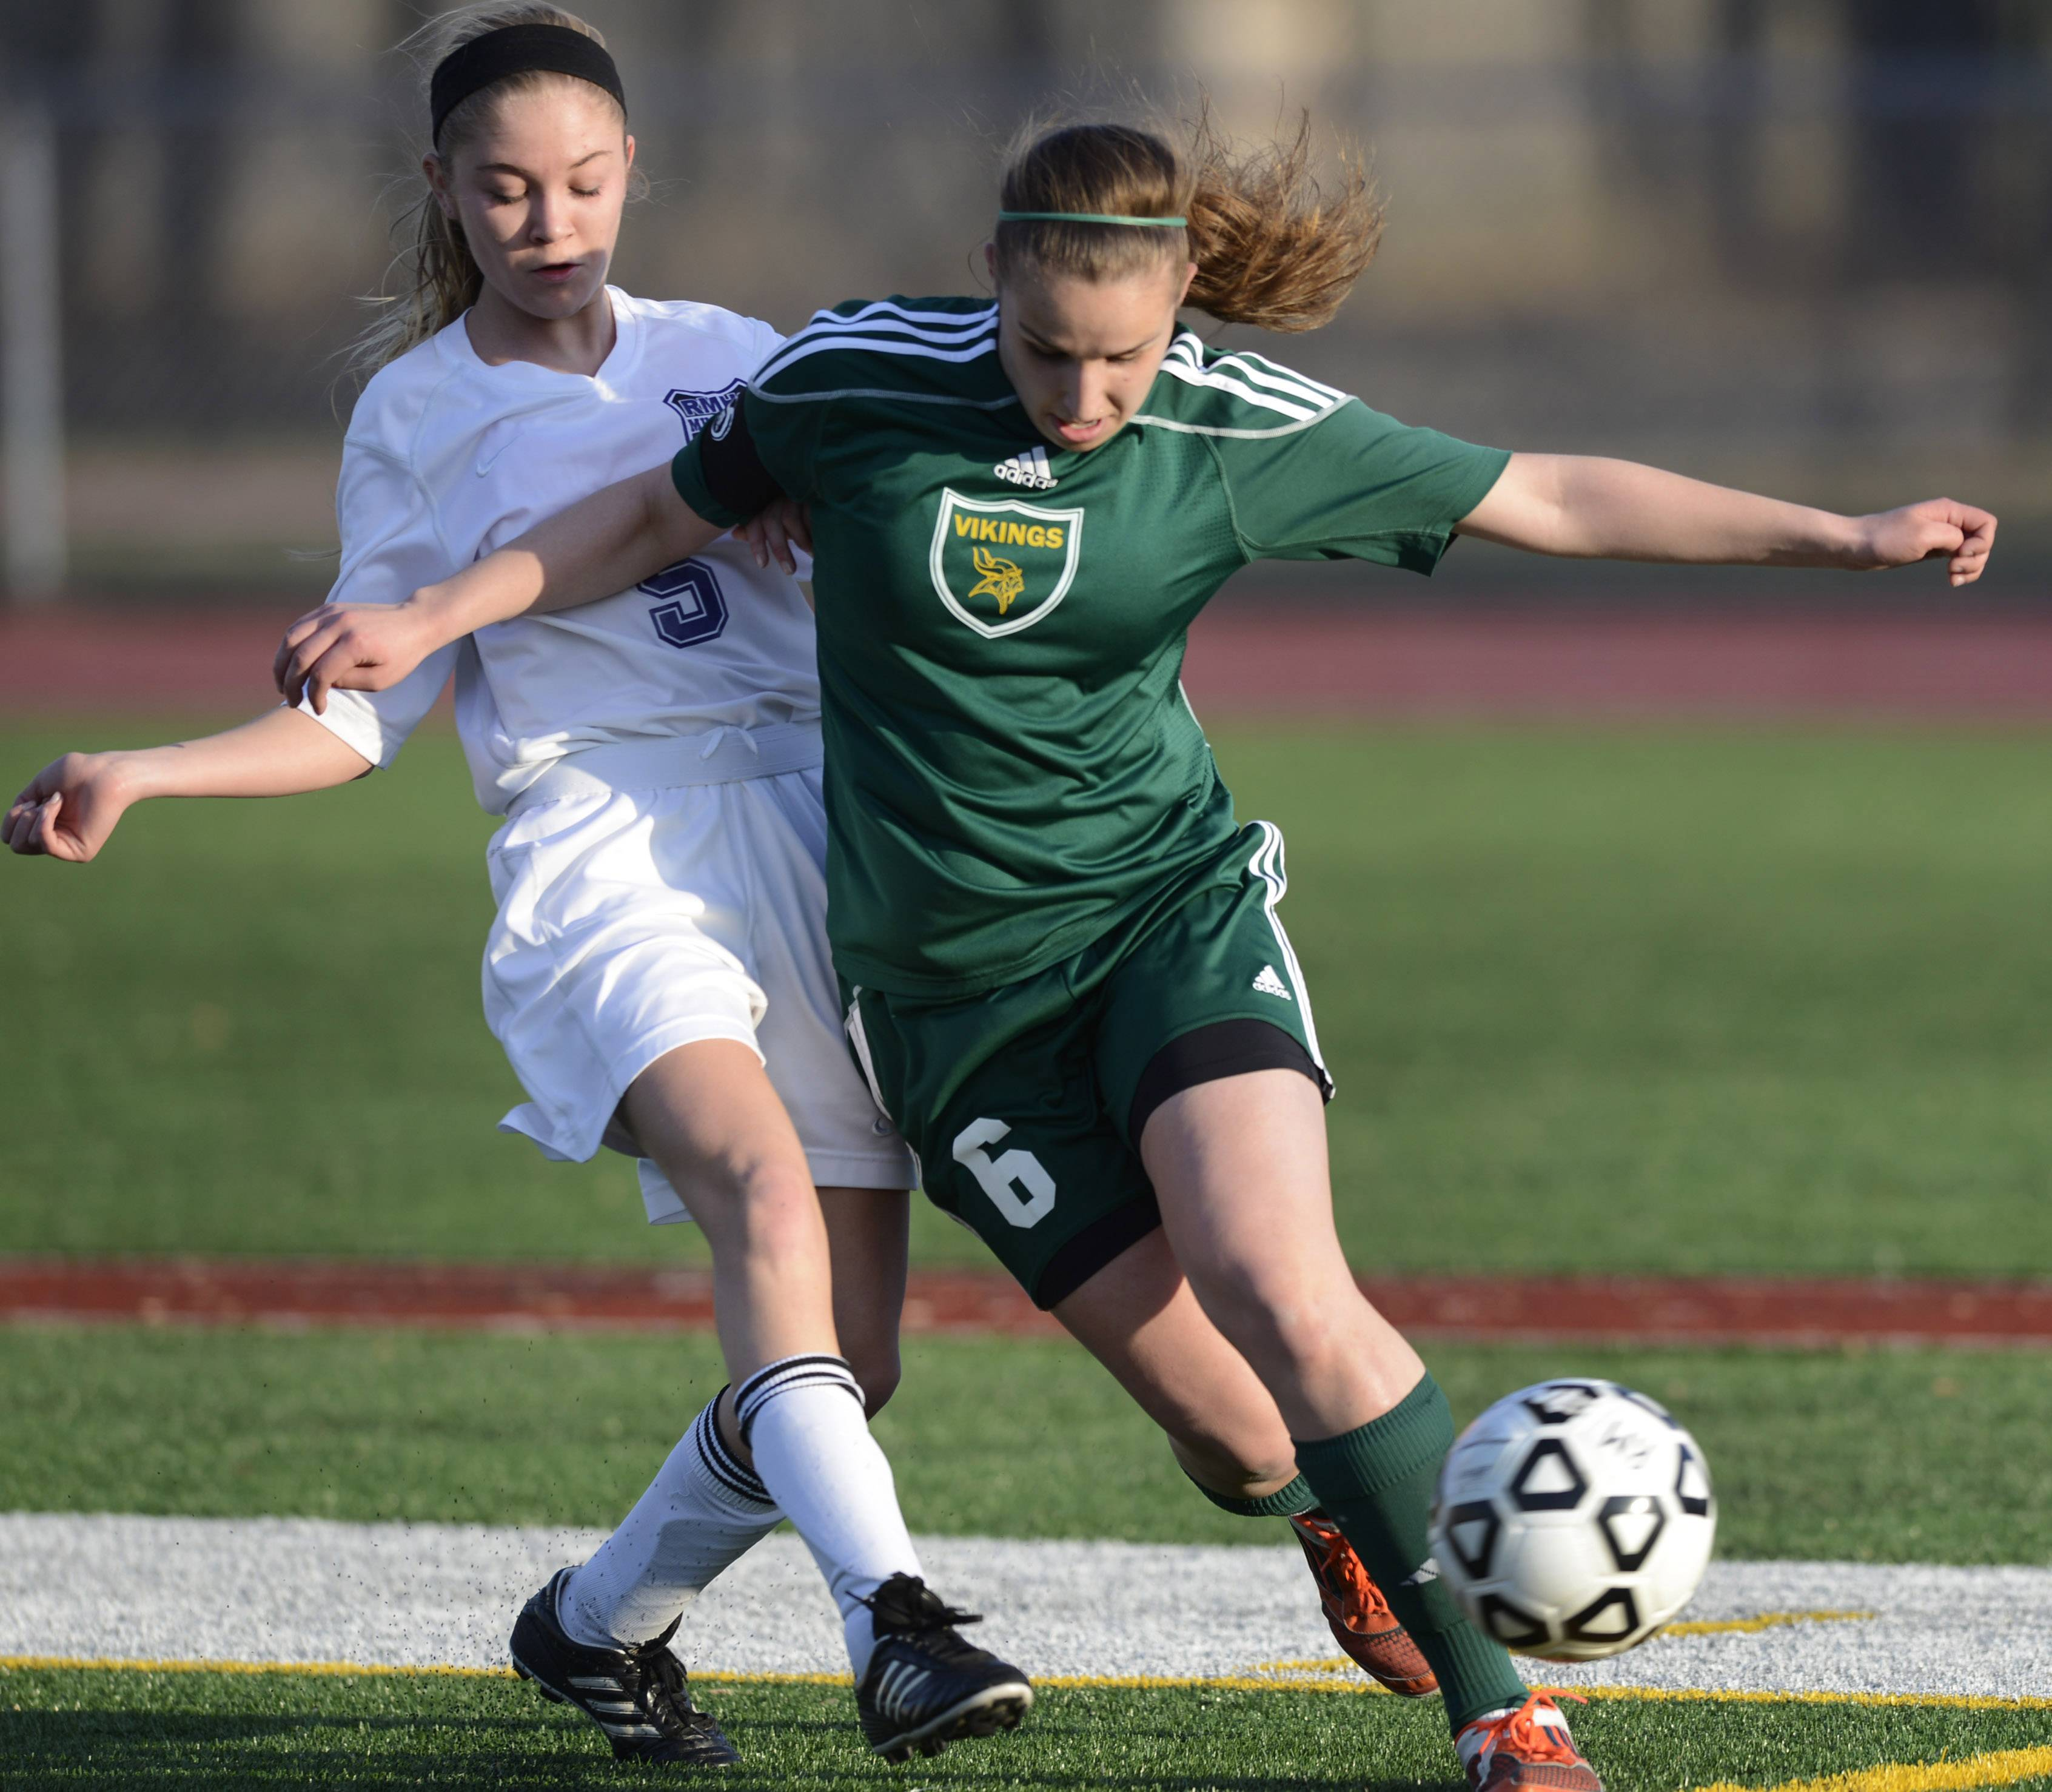 Fremd's Karolina Cholewa, right, gets between the ball and Rolling Meadows' Laura Kallal during Wednesday's game at Rolling Meadows.